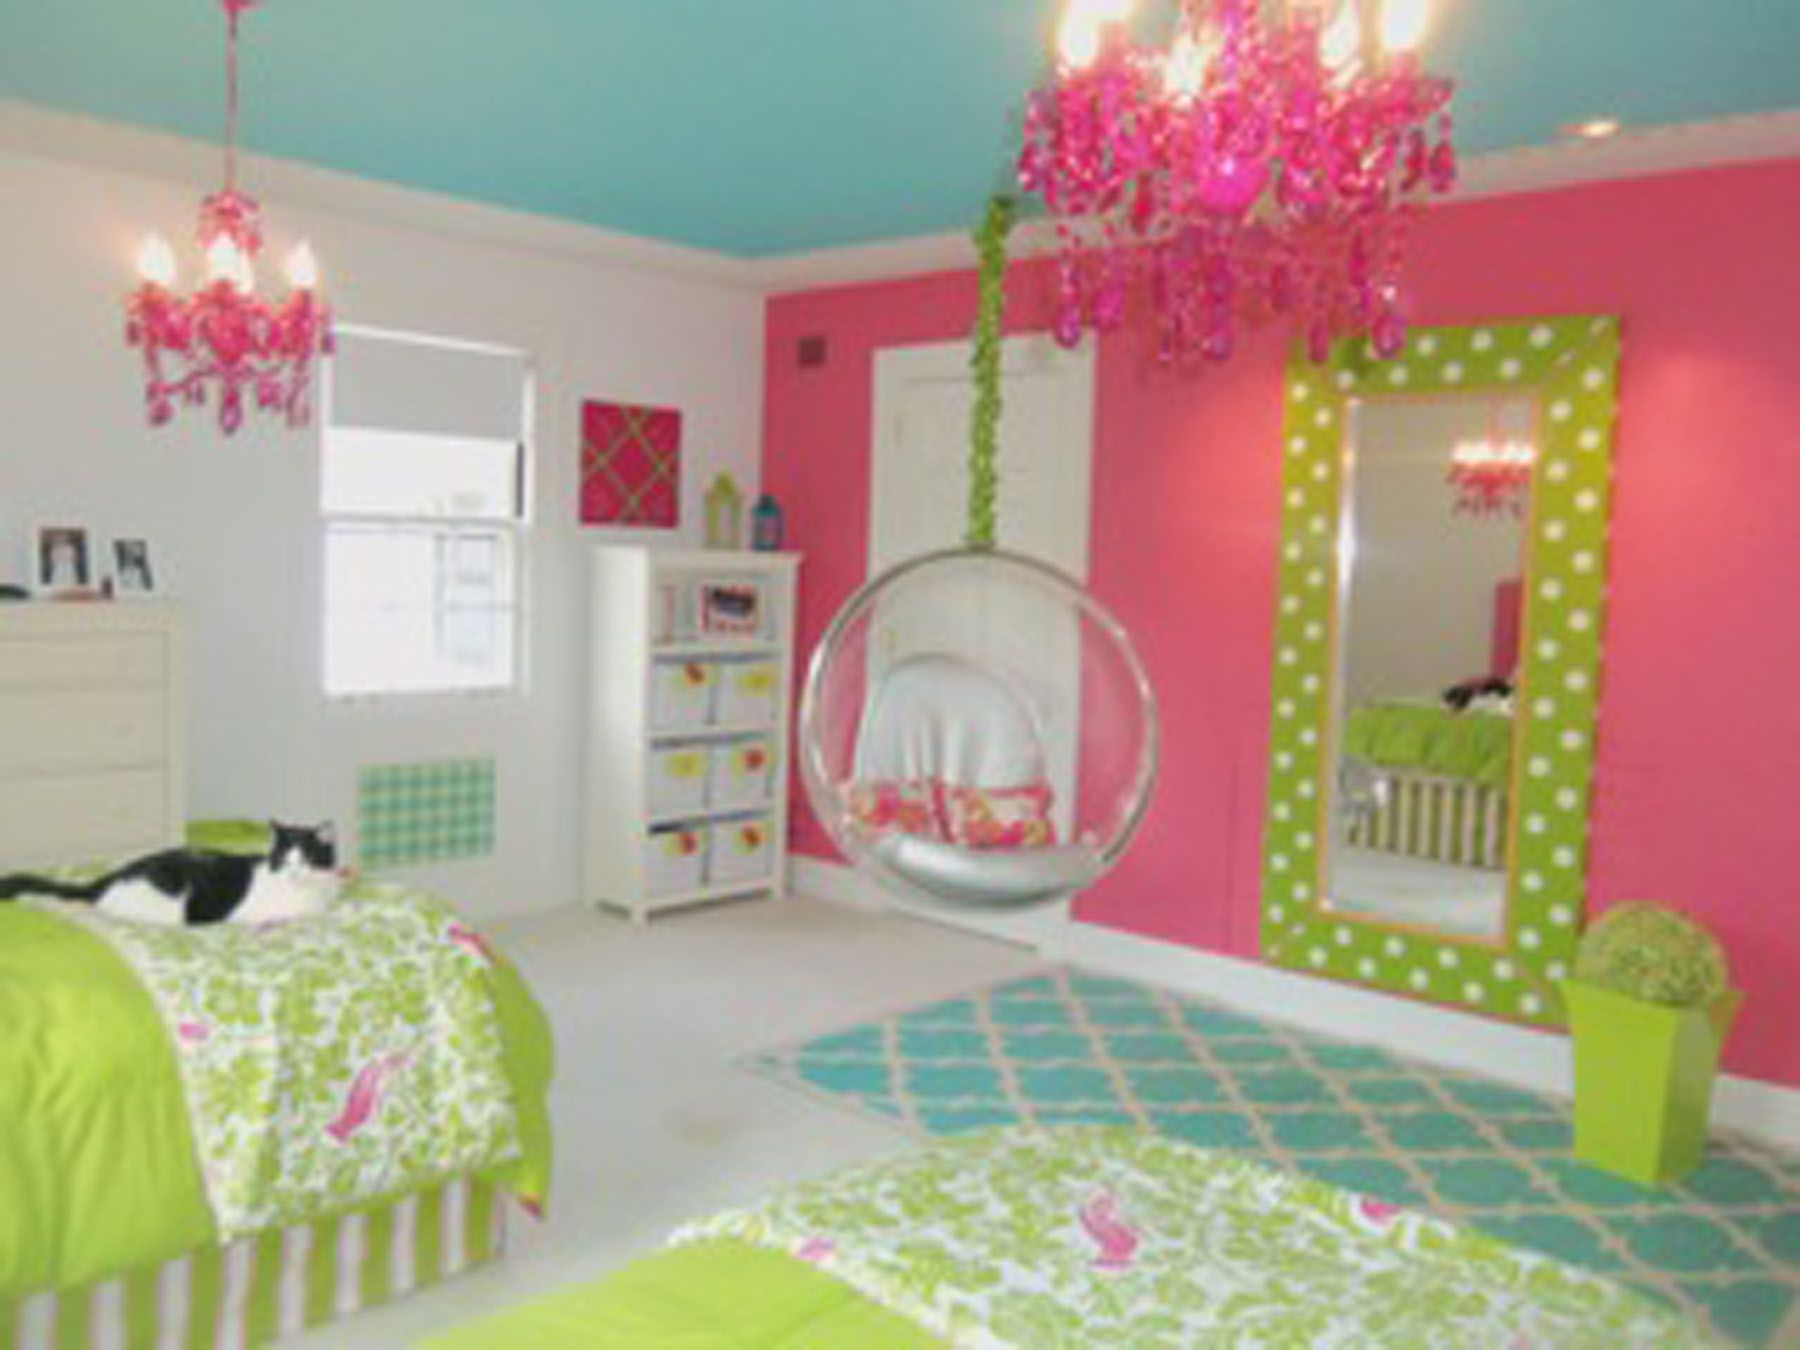 Bedrooms designs for teenagers - Lilly Pulitzer Inspired Custom Dorm Bedding Set Dream Roomsdream Bedroomteen Bedroombedroom Ideasteen